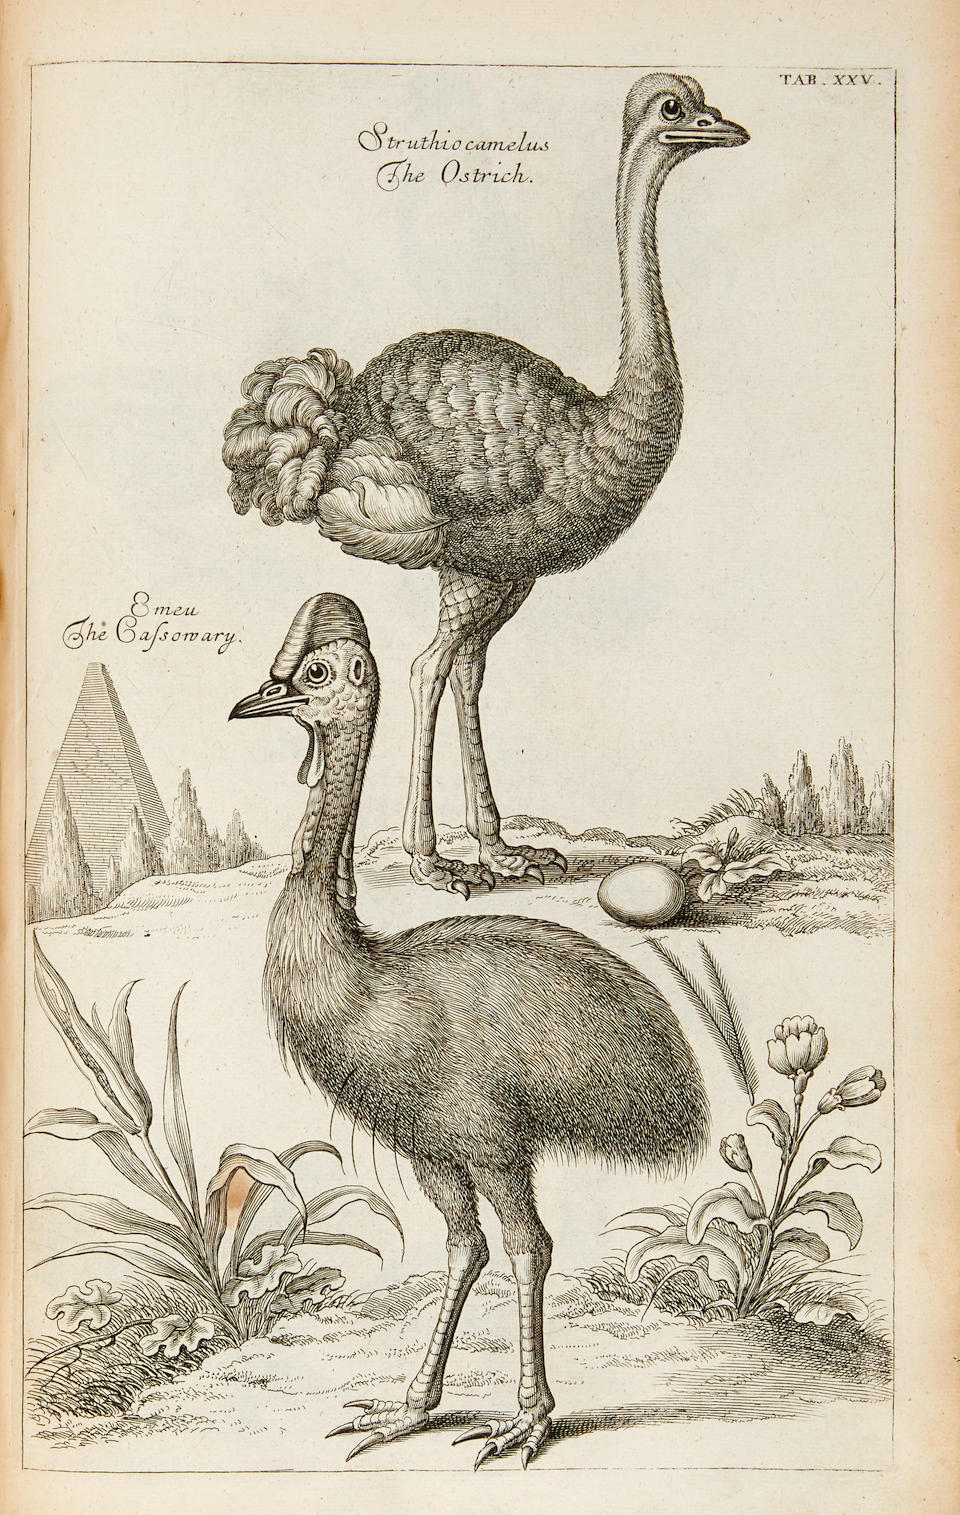 WILLUGHBY, FRANCIS. 1635-1672; AND JOHN RAY. 1627-1705. The Ornithology of Francis Willughby ... in Three Books wherein all the Birds hitherto known. London: John Martyn, 1678.